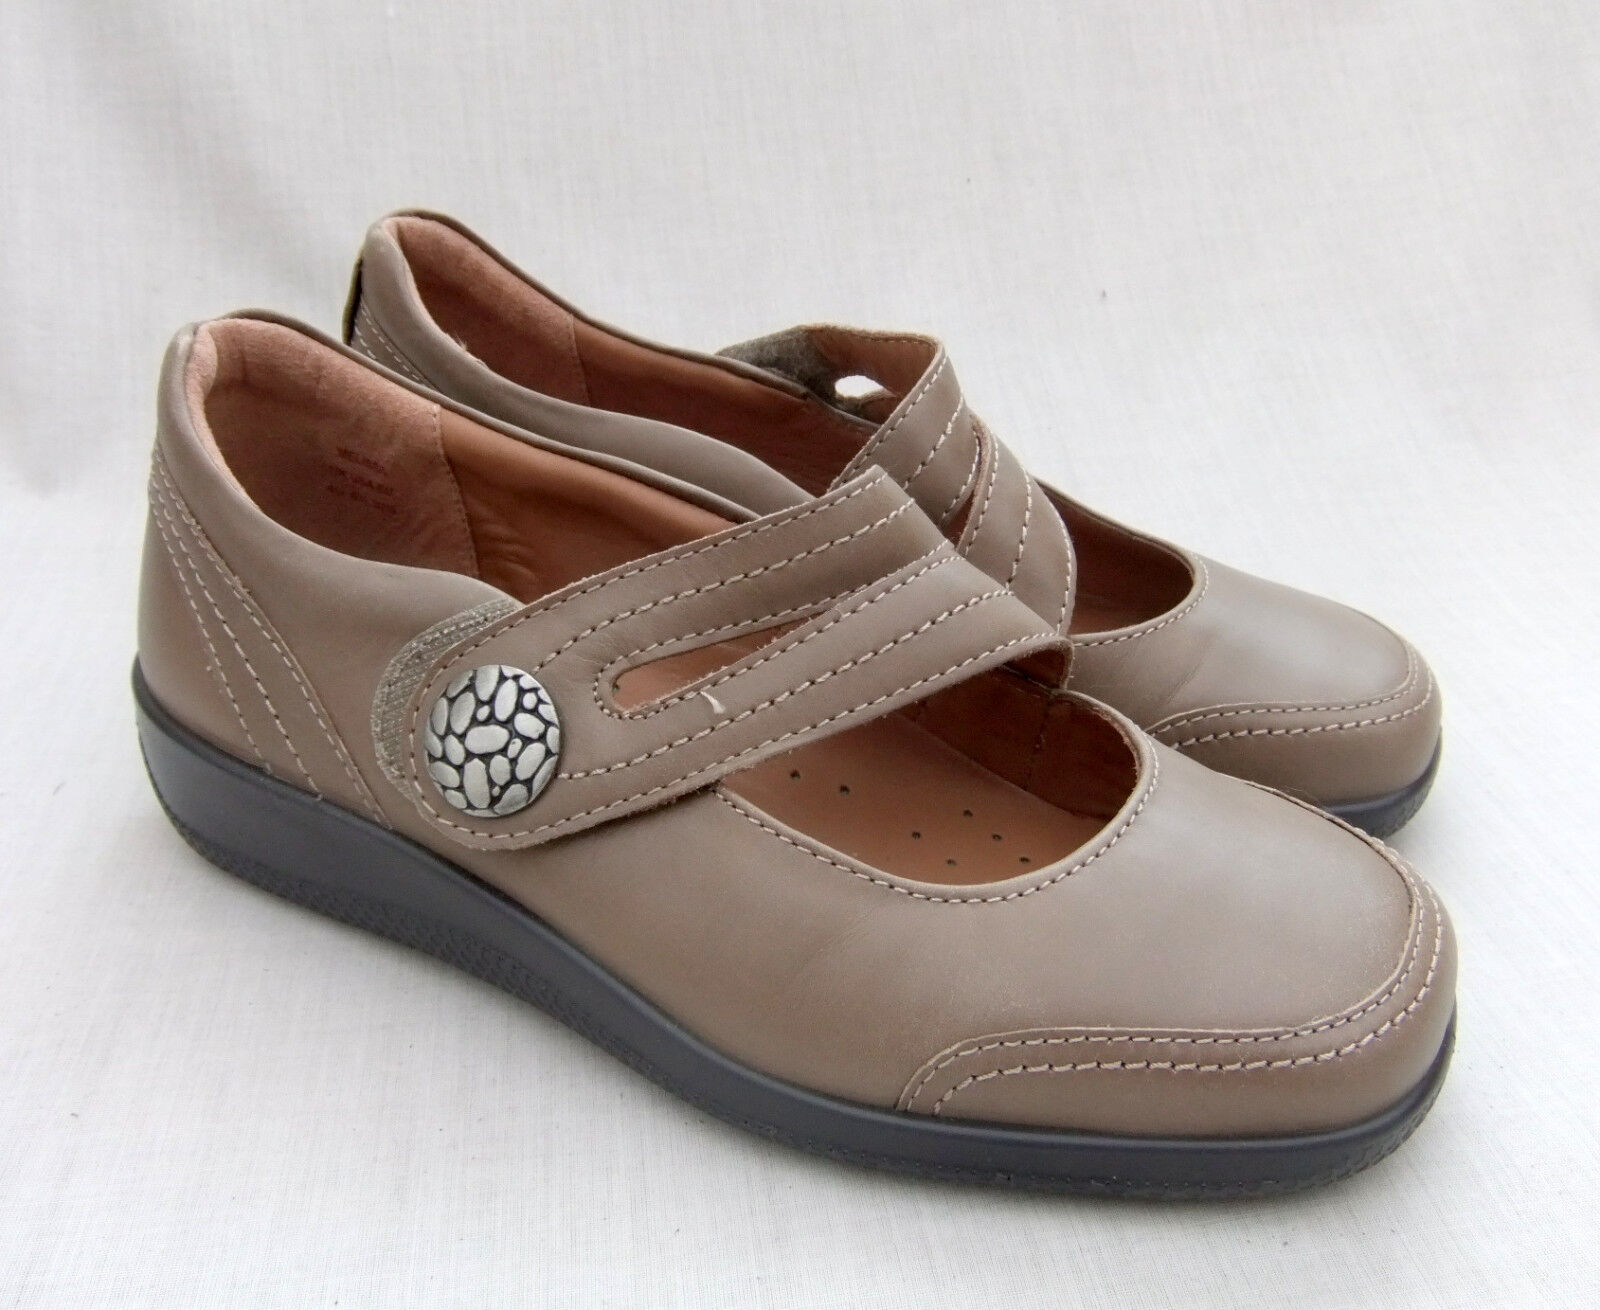 NEW HOTTER MELISSA femmes TAUPE LEATHER chaussures Taille 4.5   37.5 STD